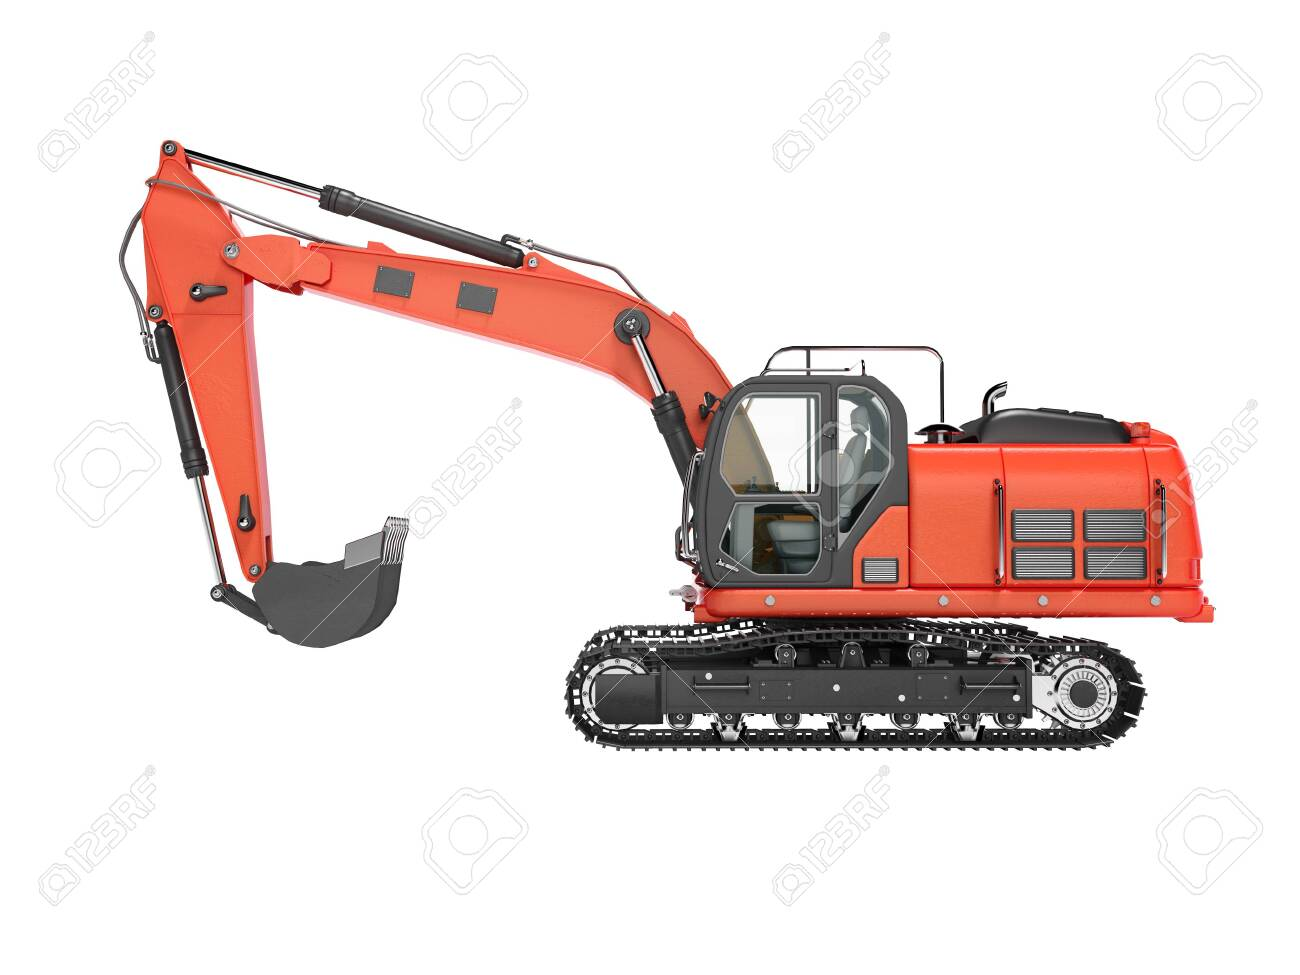 Road building red excavator on metal caterpillar track left side view 3d render on white background no shadow - 129352276